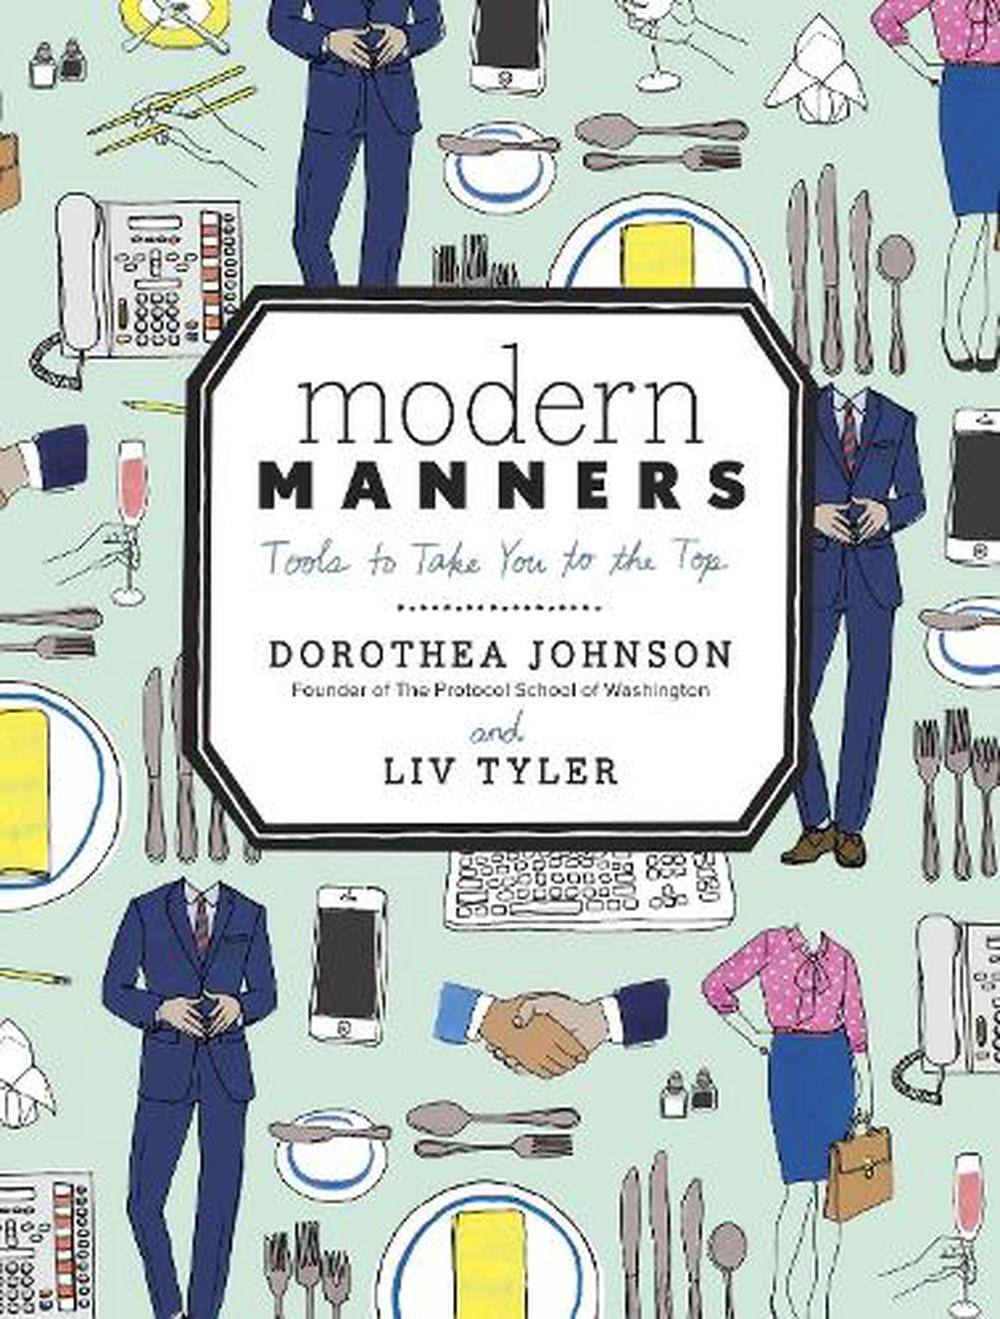 Modern Manners: Tools to Take You to the Top by Dorothea